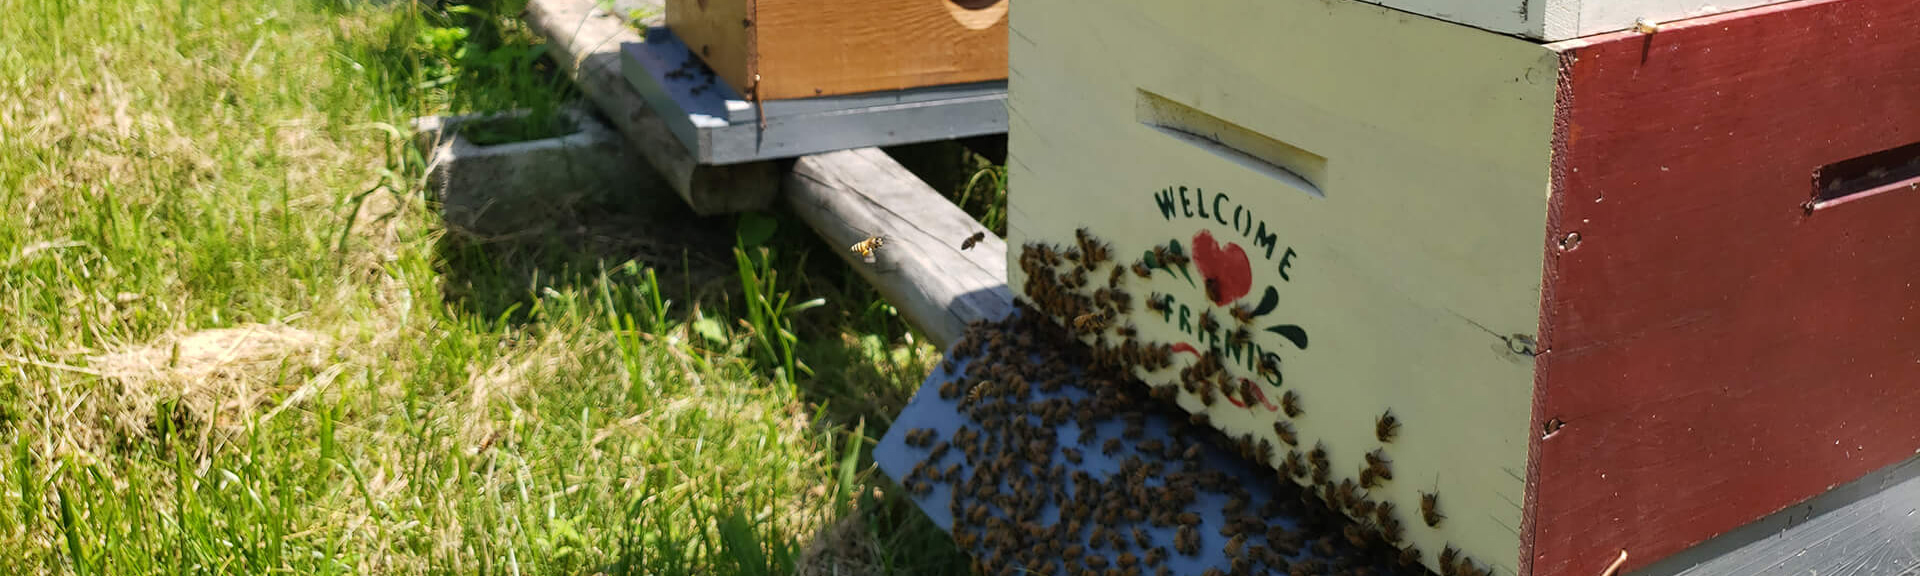 "Apiary with honey bees with ""Welcome Friends"" painted on"